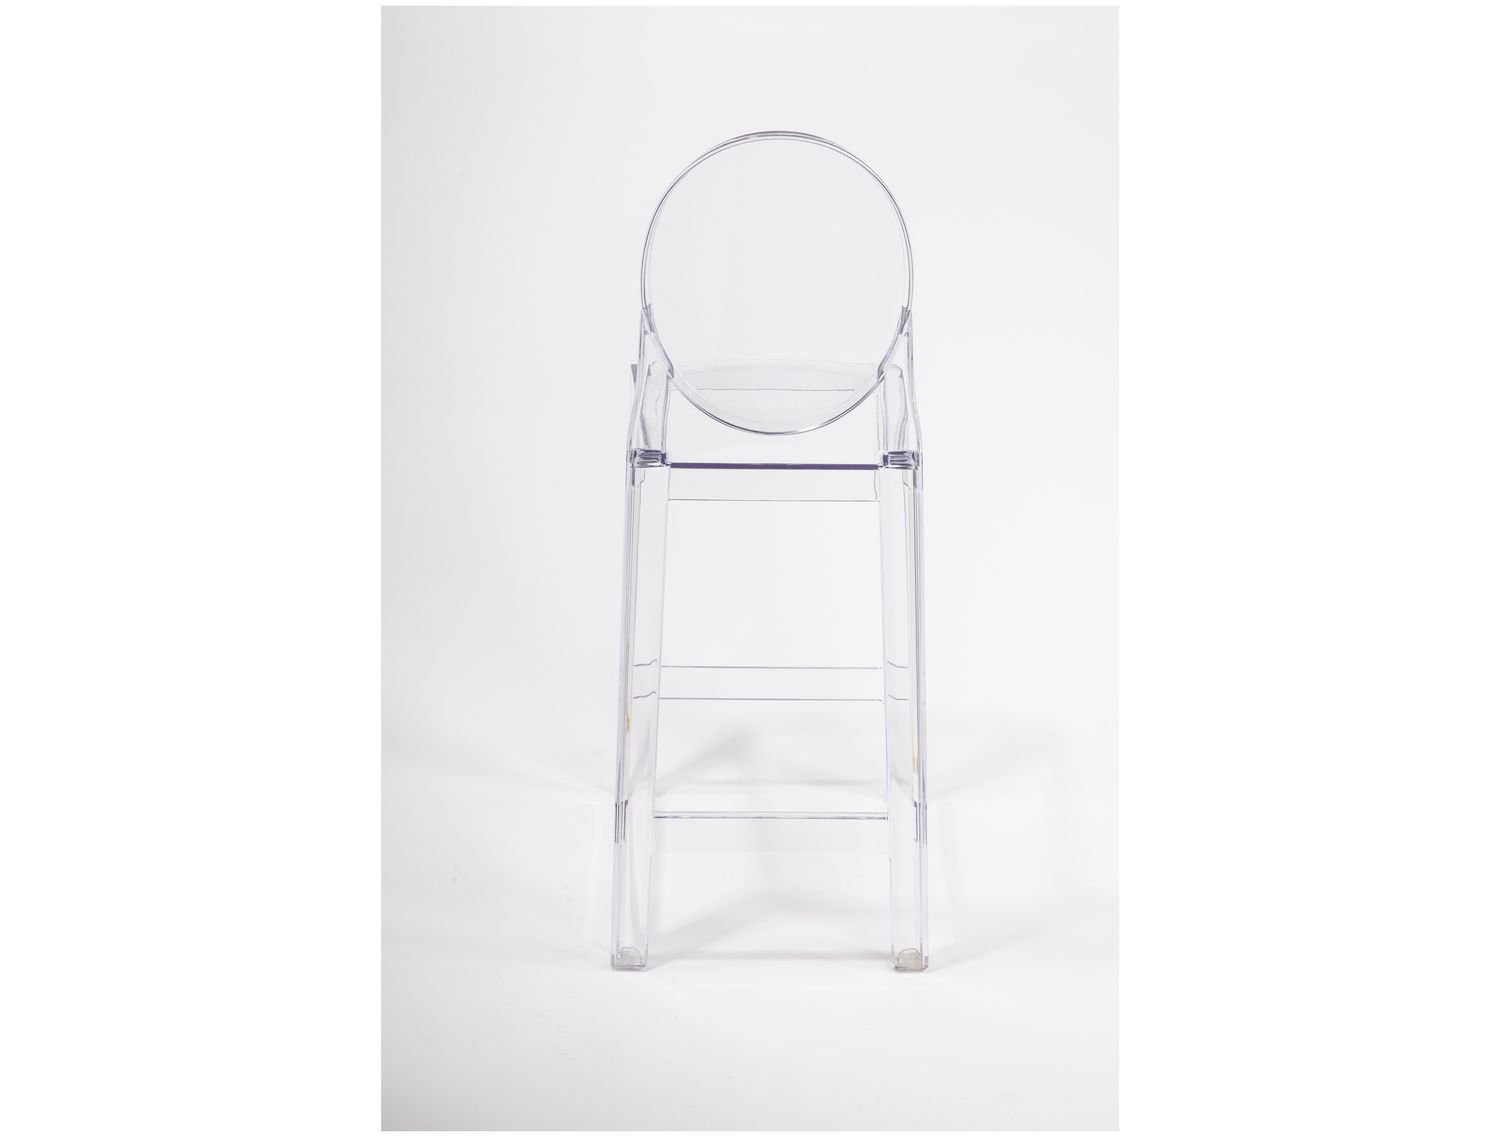 Stilnovo ghost clear counter stool fd201clear bar and counter stools pinterest counter - Ghost bar stools counter height ...